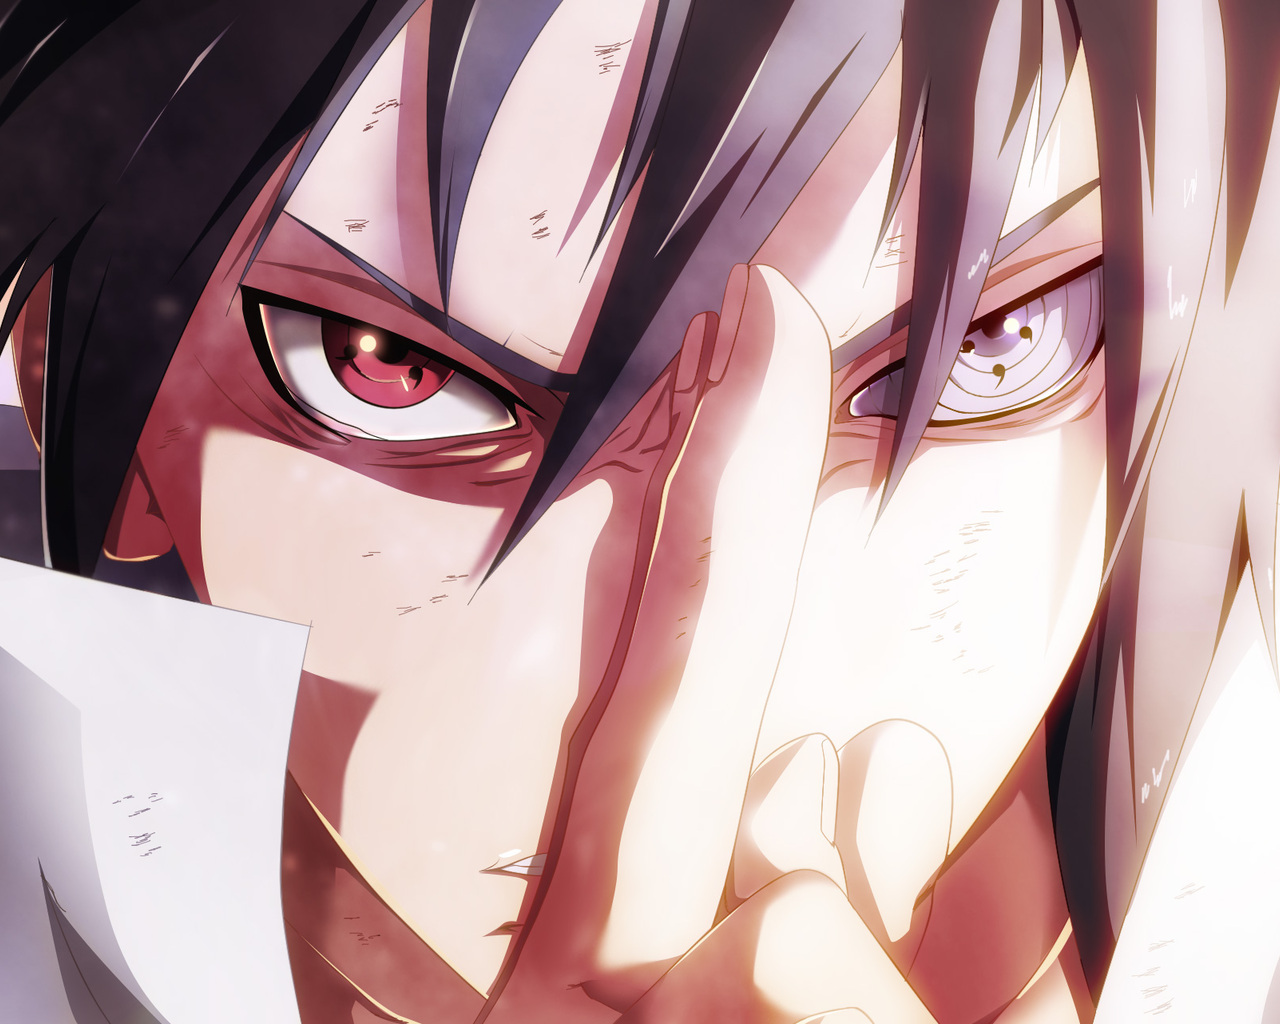 1280x1024 Sasuke Uchiha Naruto 1280x1024 Resolution Hd 4k Wallpapers Images Backgrounds Photos And Pictures